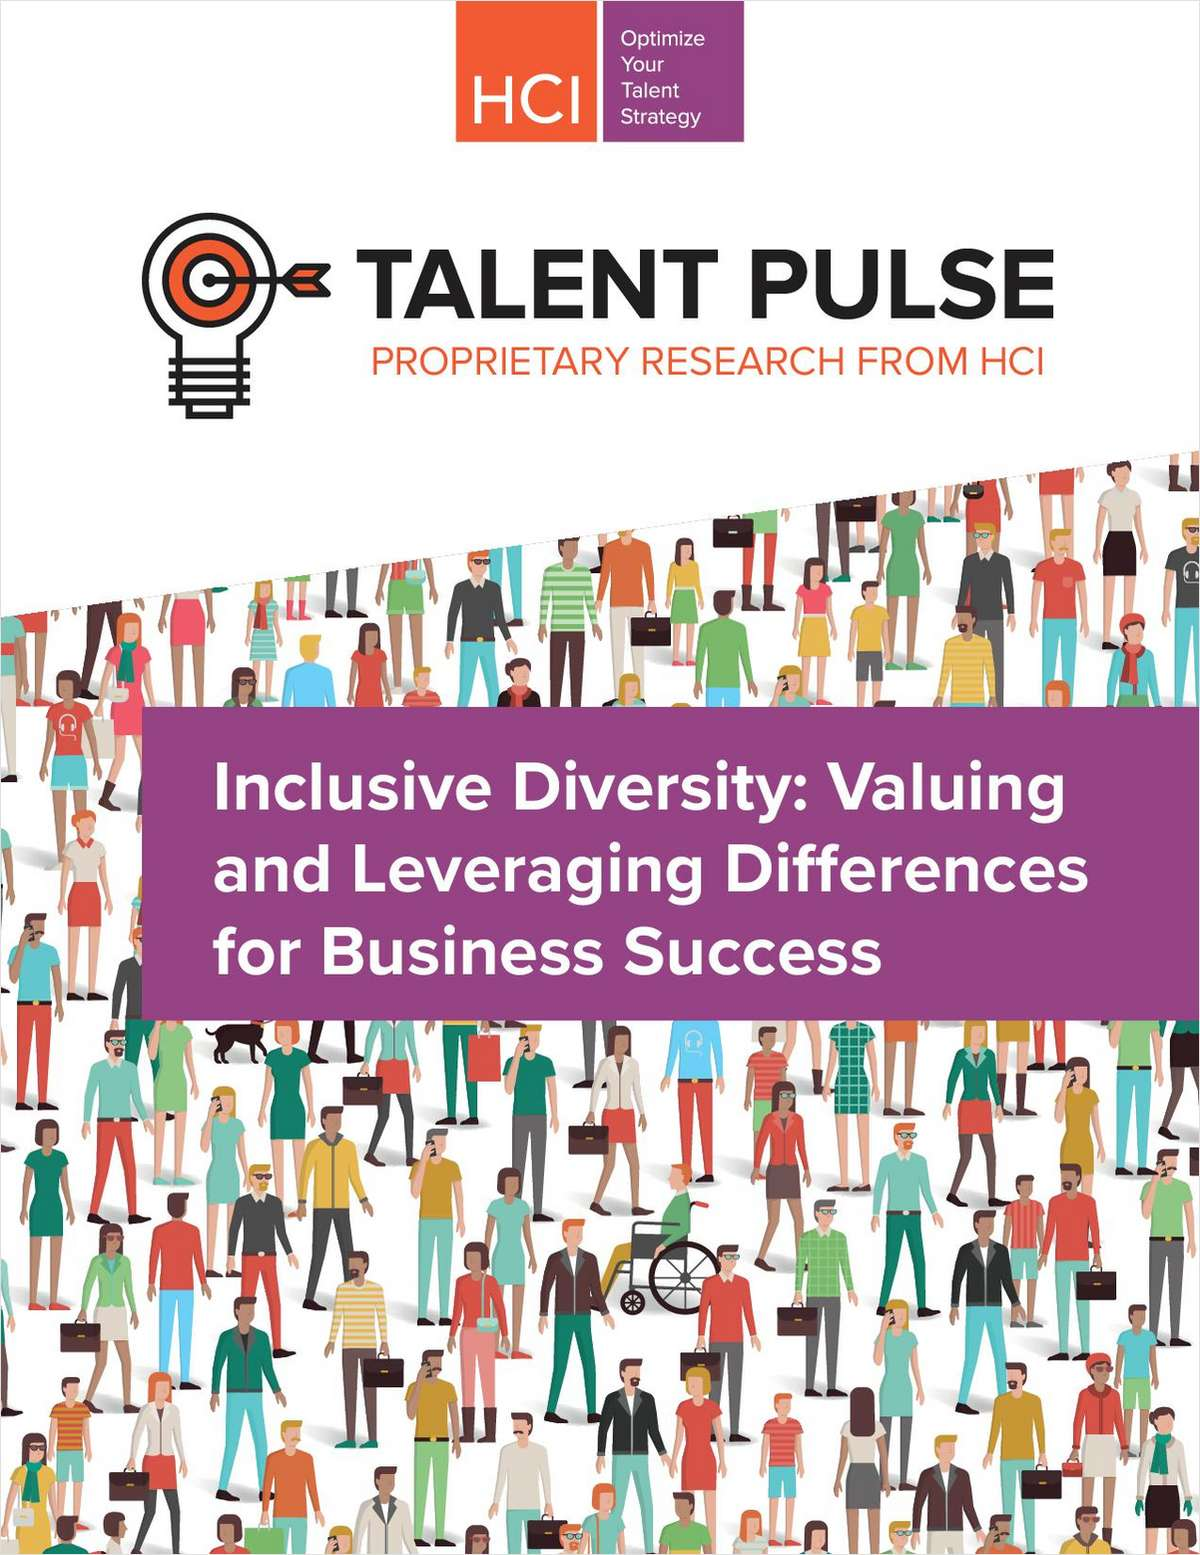 Talent Pulse: Inclusive Diversity: Valuing and Leveraging Differences for Business Success